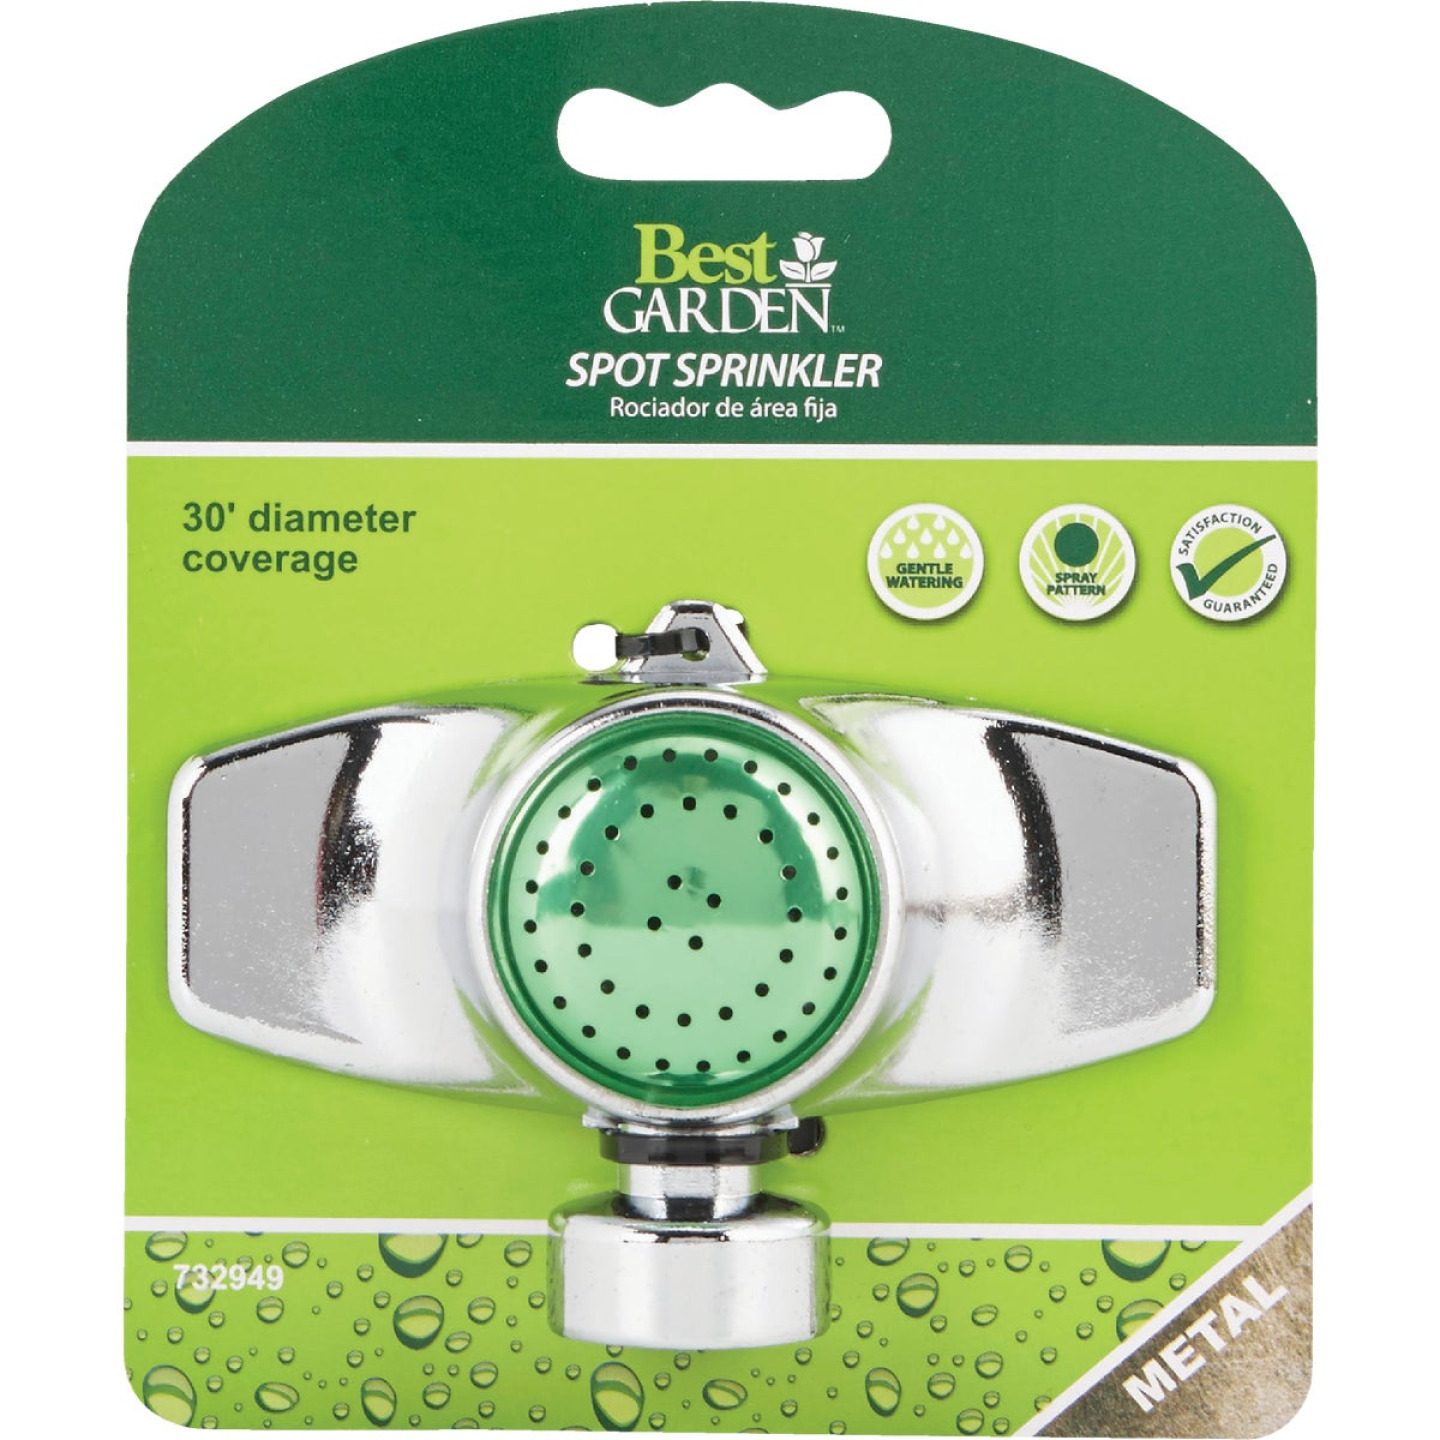 Best Garden Metal 30 Ft. Dia. Spot Stationary Sprinkler, Metallic & Green Image 2